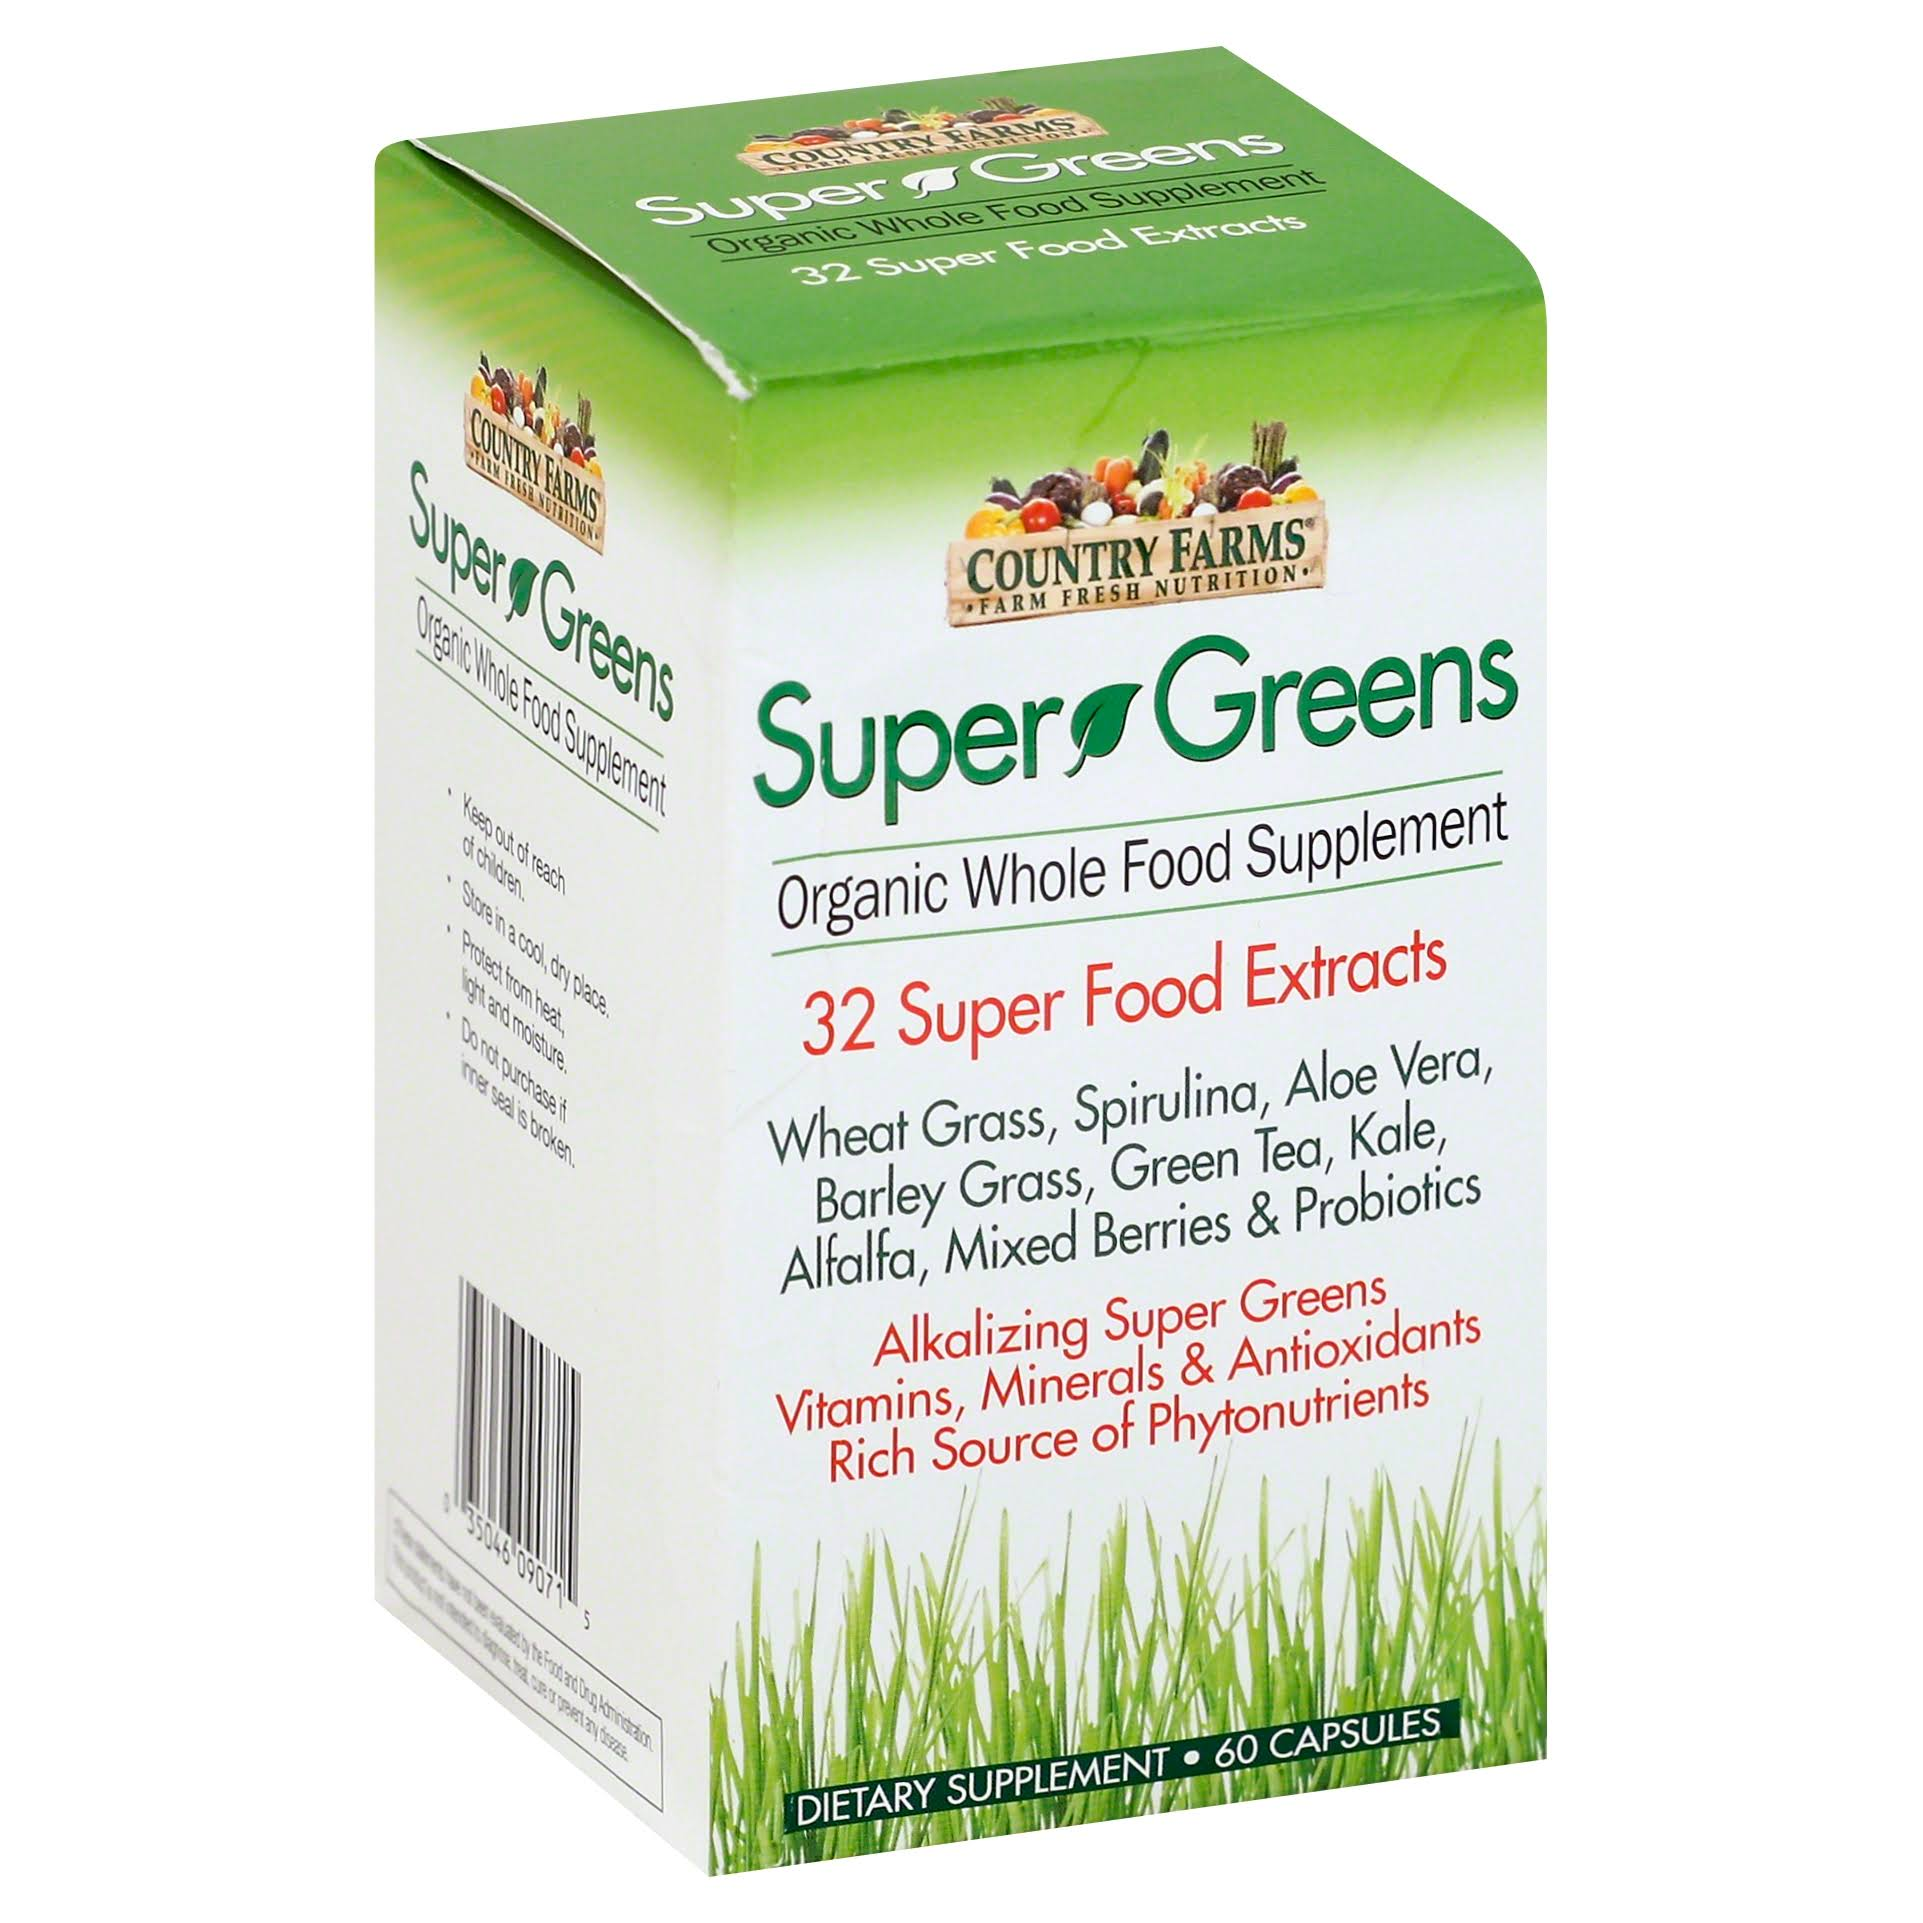 Country Farms Super Greens Organic Whole Food Dietary Supplement - 60pk